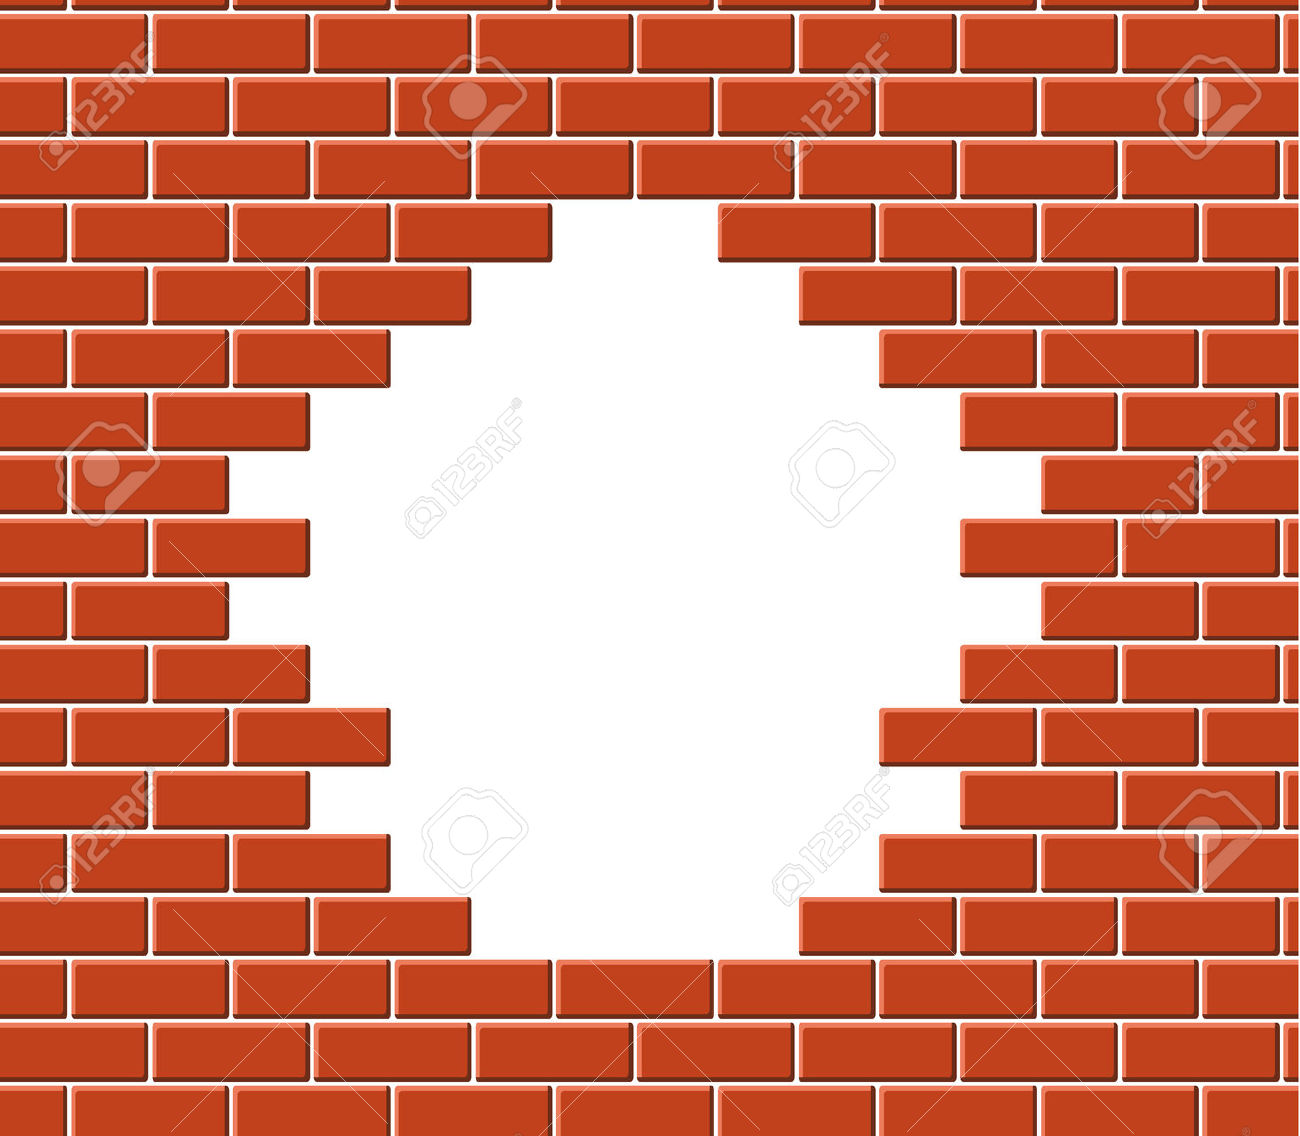 Broken Brick Clipart.